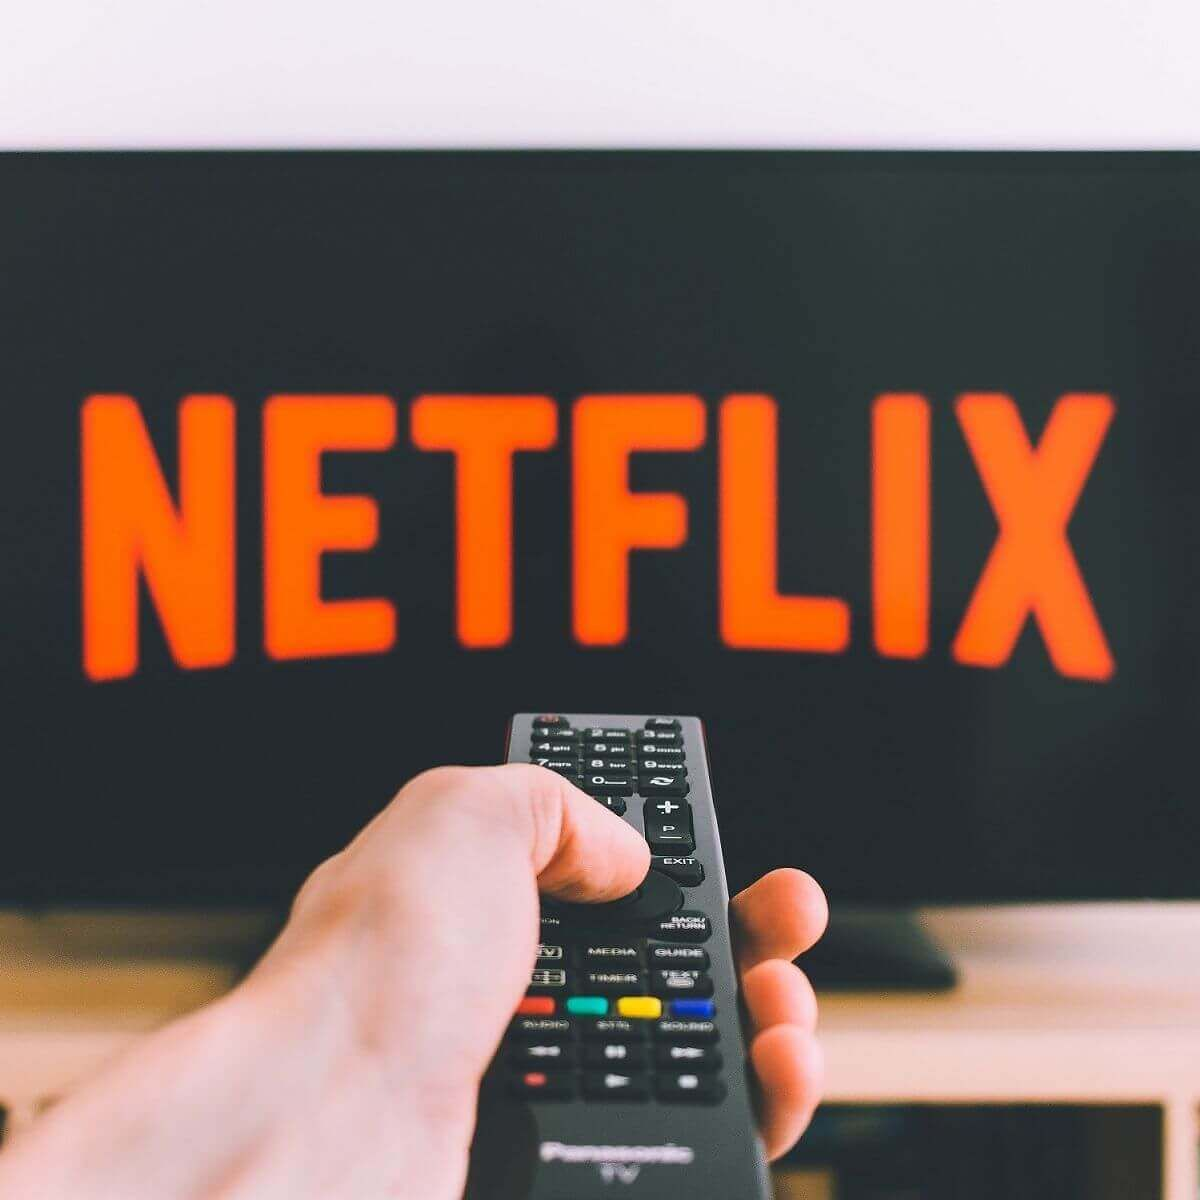 Netflix is a popular online streaming service that is used